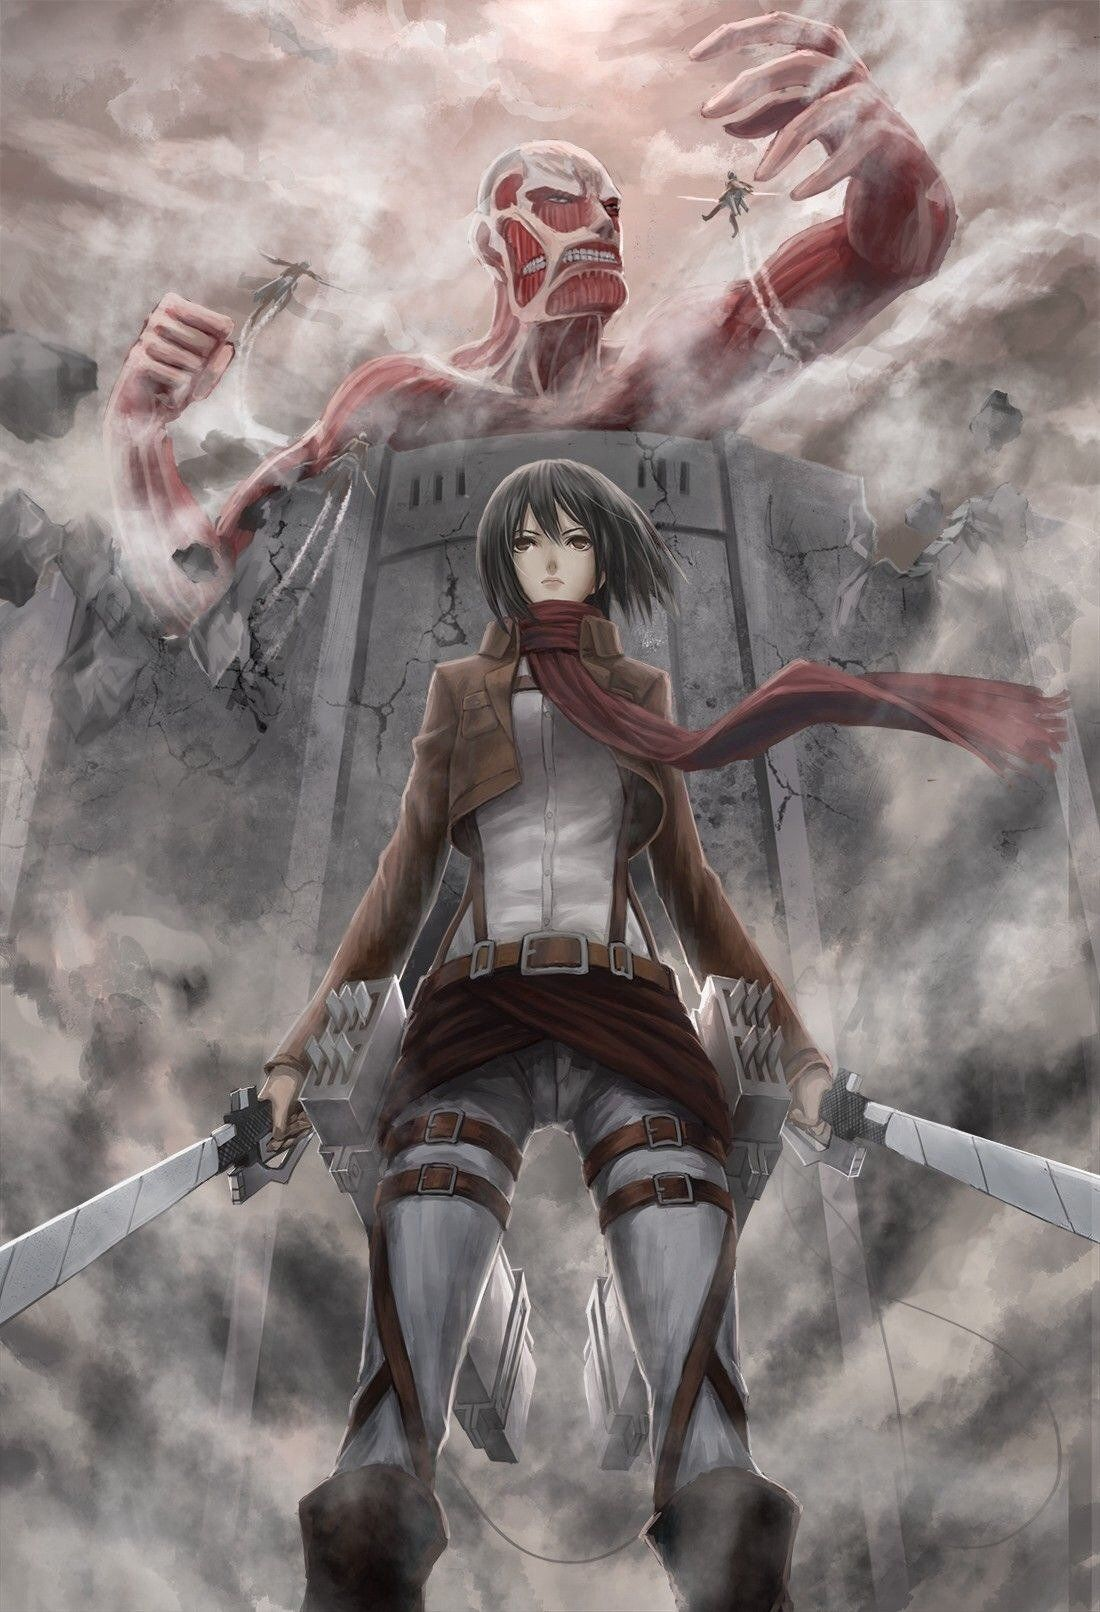 Attack On Titan Iphone Wallpapers Top Free Attack On Titan Iphone Backgrounds Wallpaperaccess